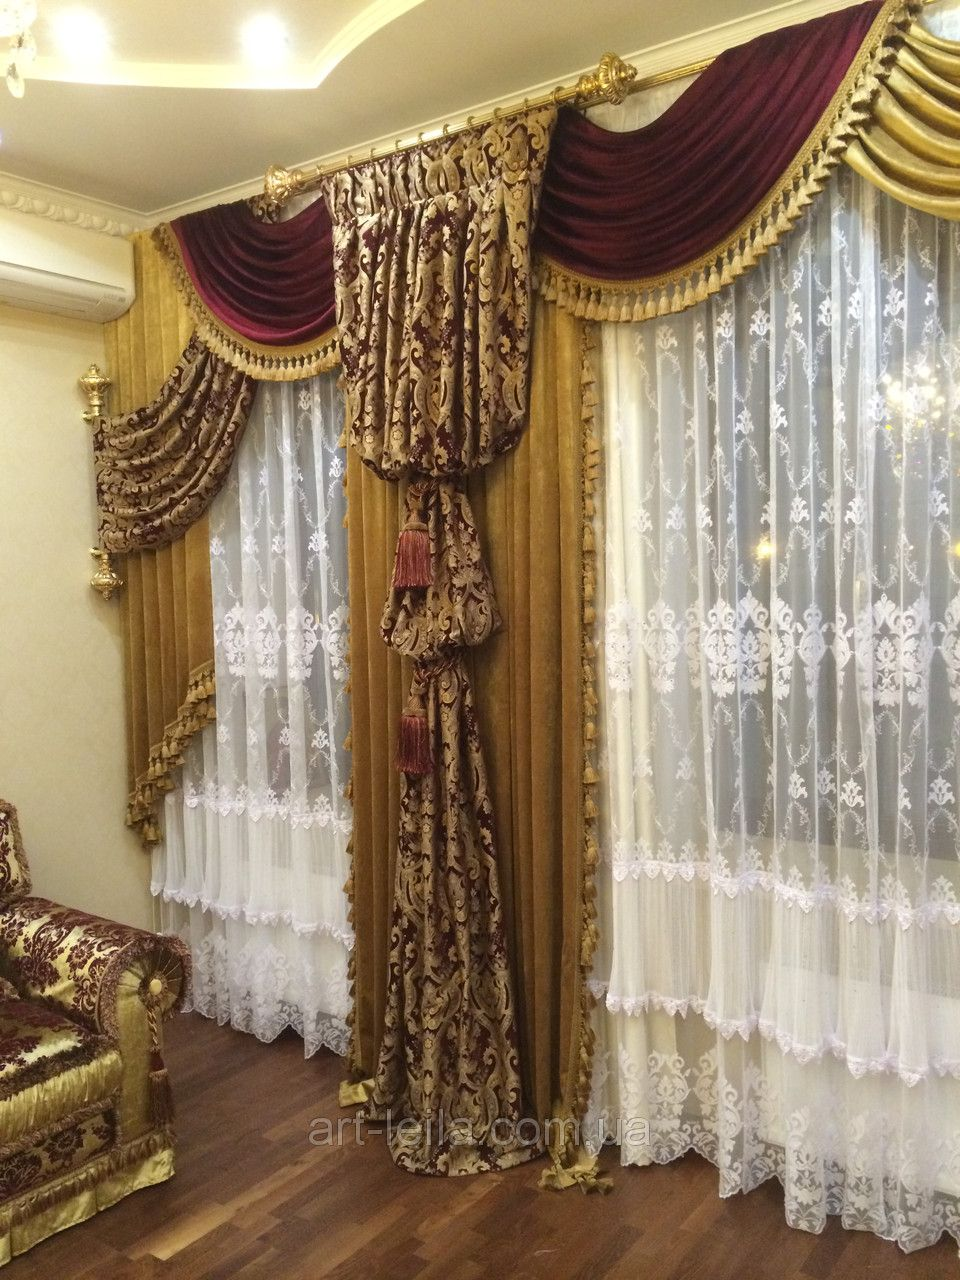 Ho how to tie balloon curtains - Classical Design But I Would Choose A Beige More Simple Chiffon